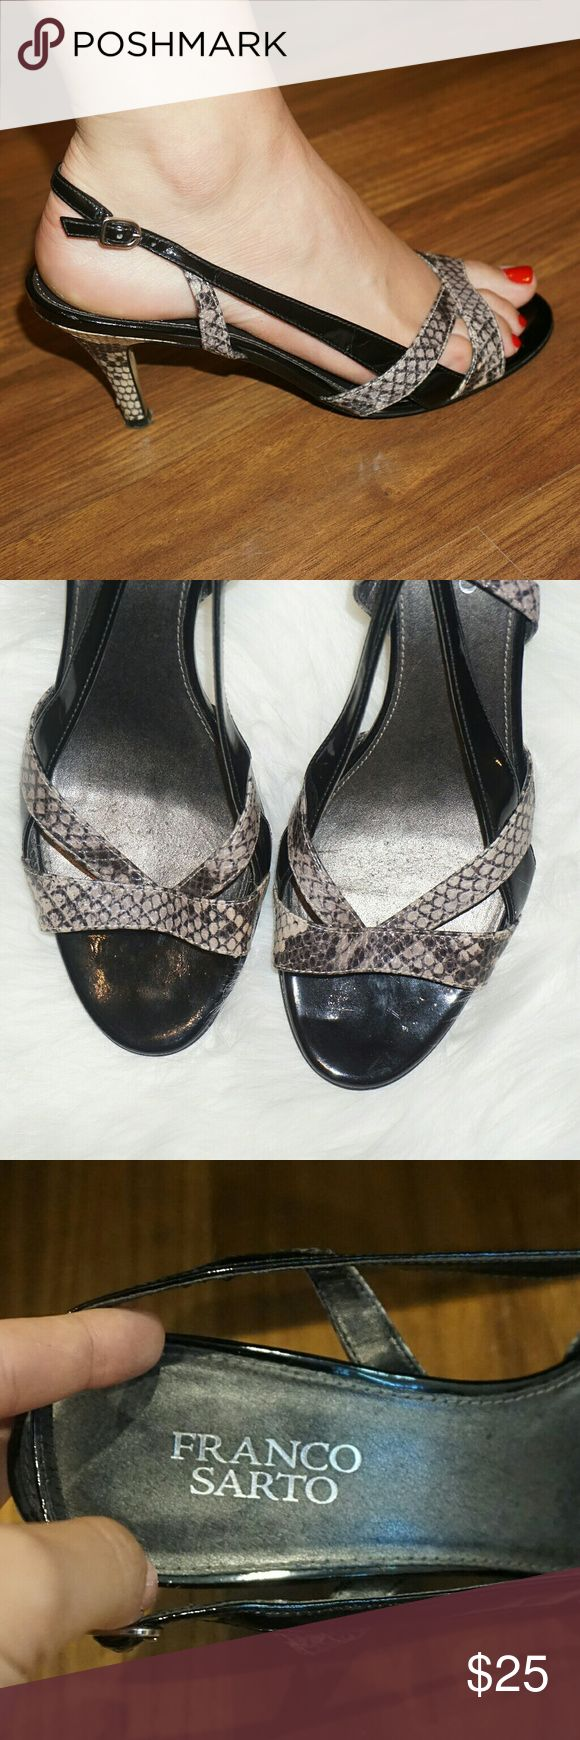 Franco Sarto black and snakeskin heels Super cute, great condition Franco Sarto black and snakeskin heels with adjustable strap Franco Sarto Shoes Heels